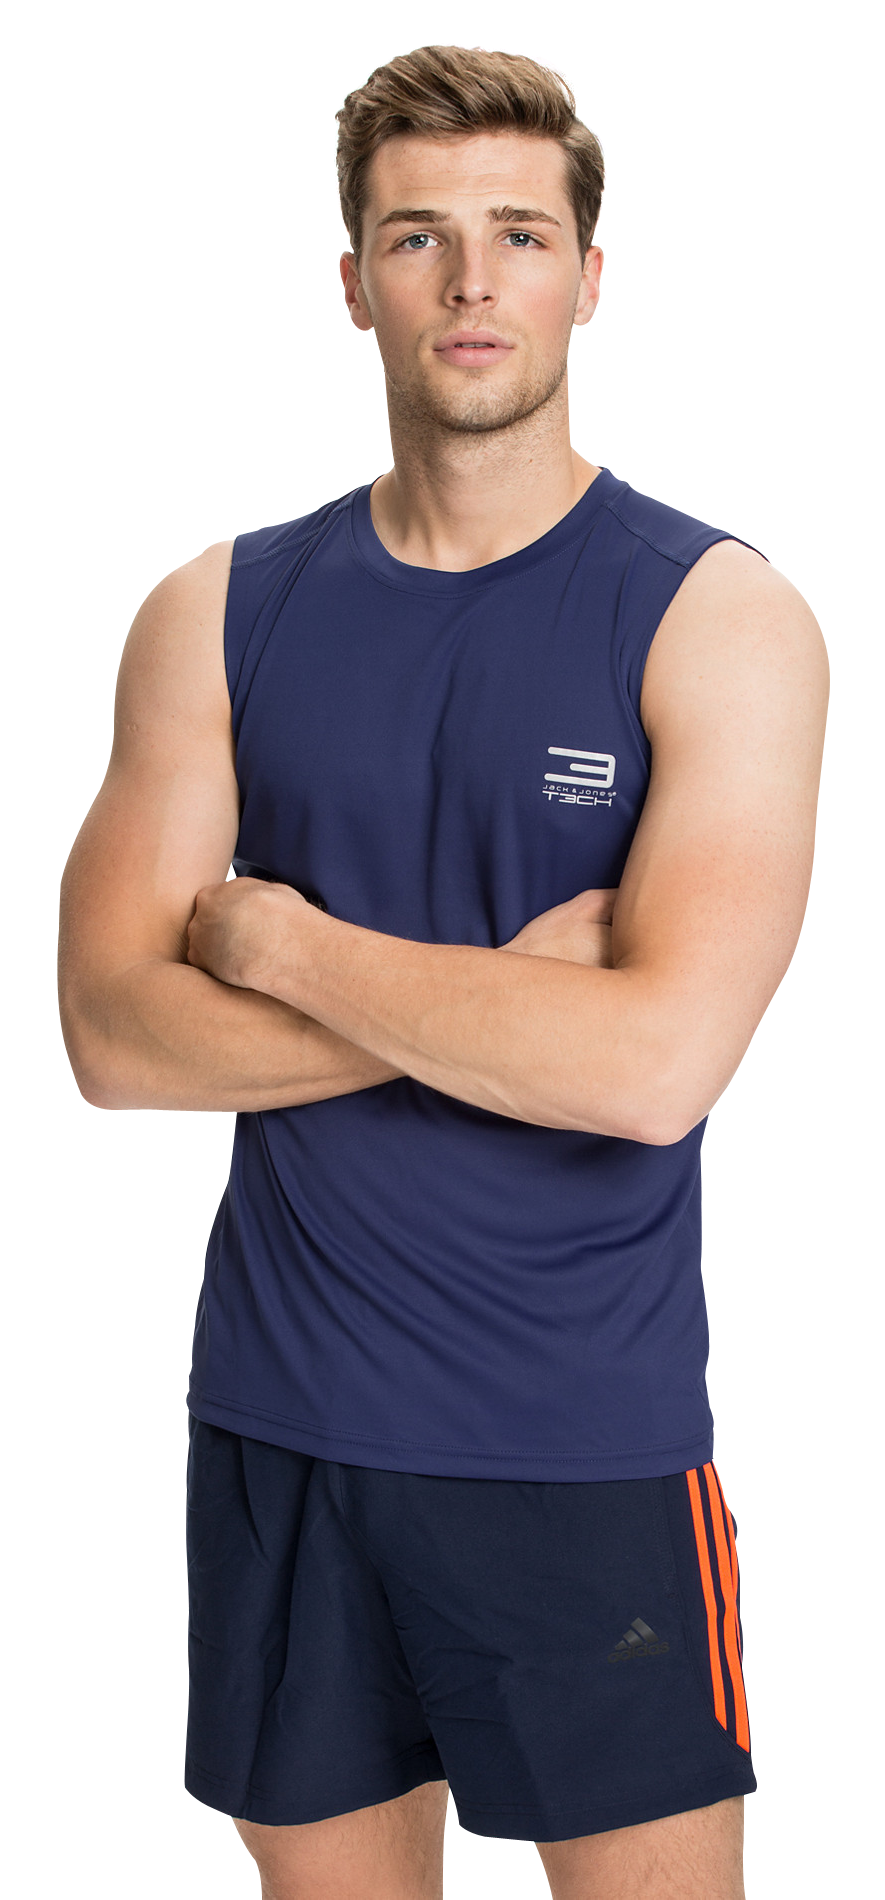 Fitness Picture PNG Image